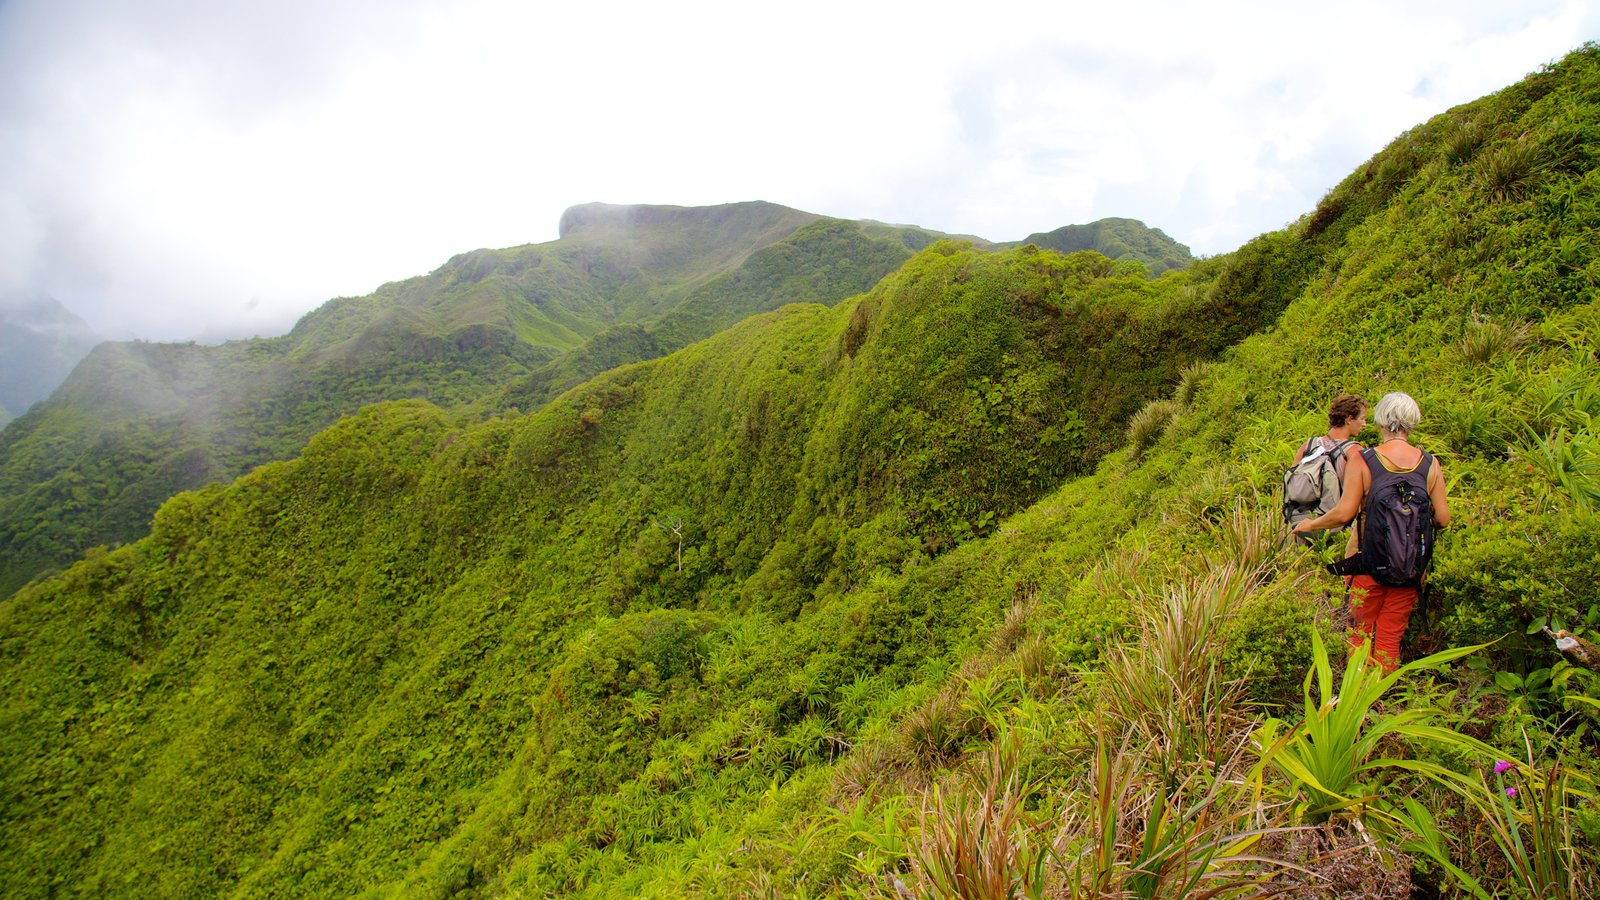 Tahiti which includes rainforest, landscape views and hiking or walking